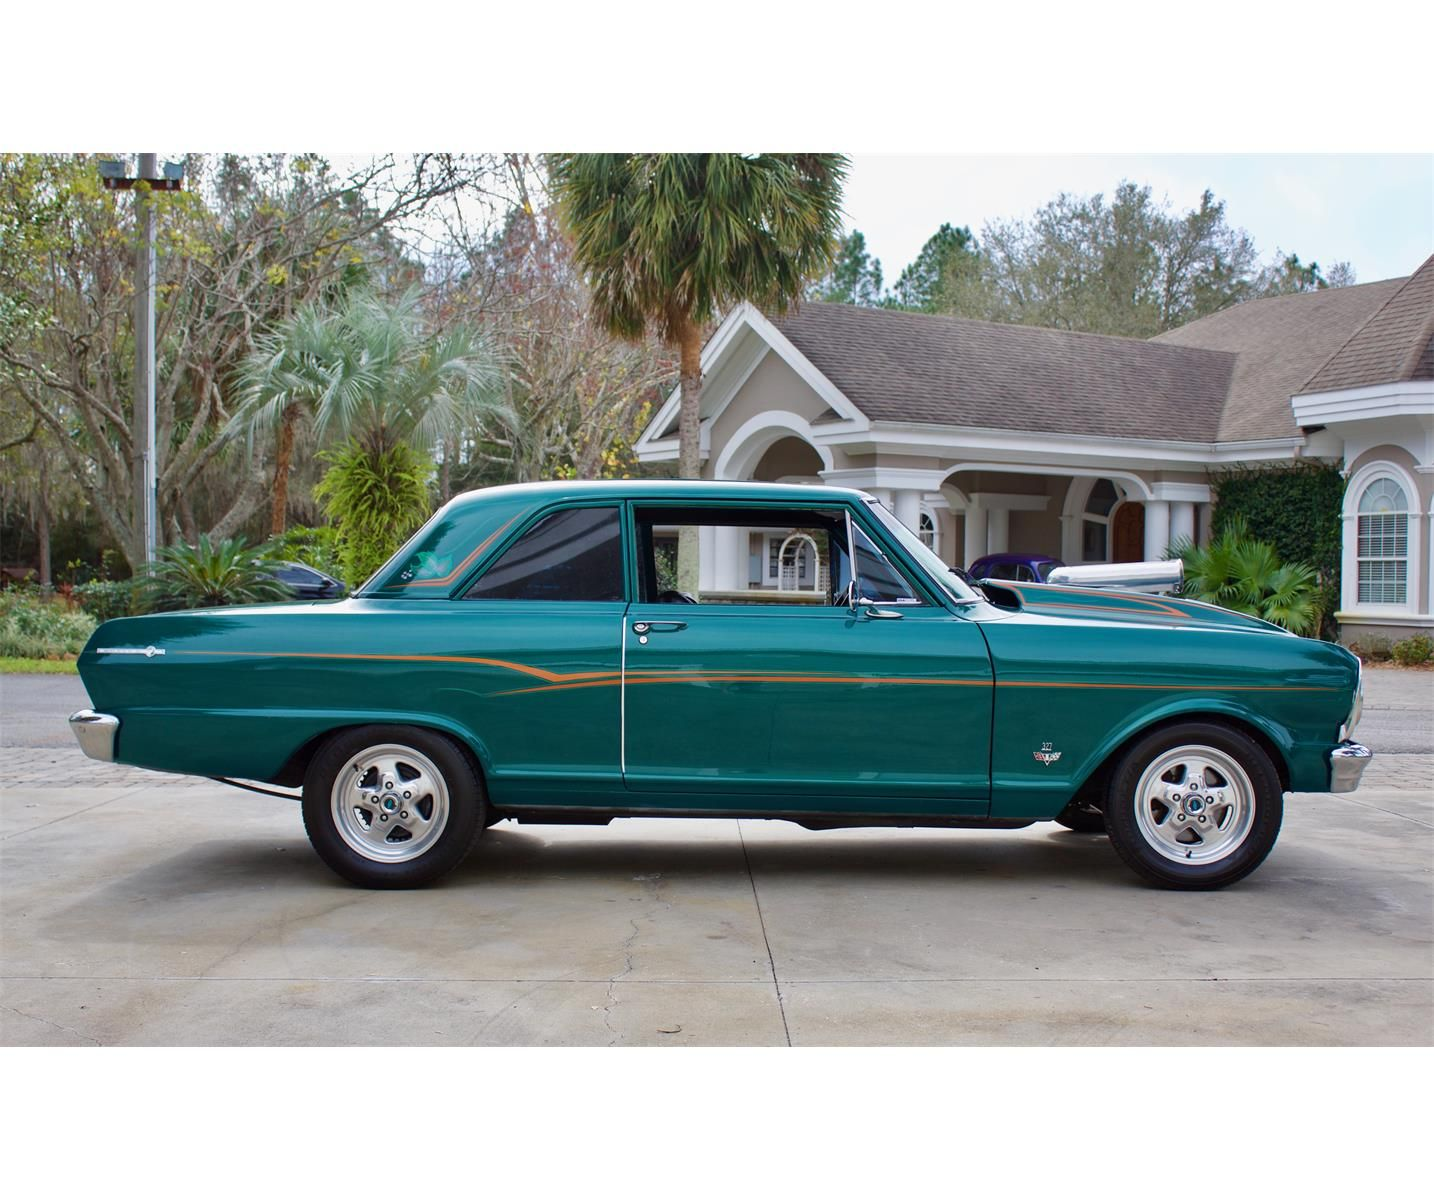 Large Photo Of 65 Nova Part